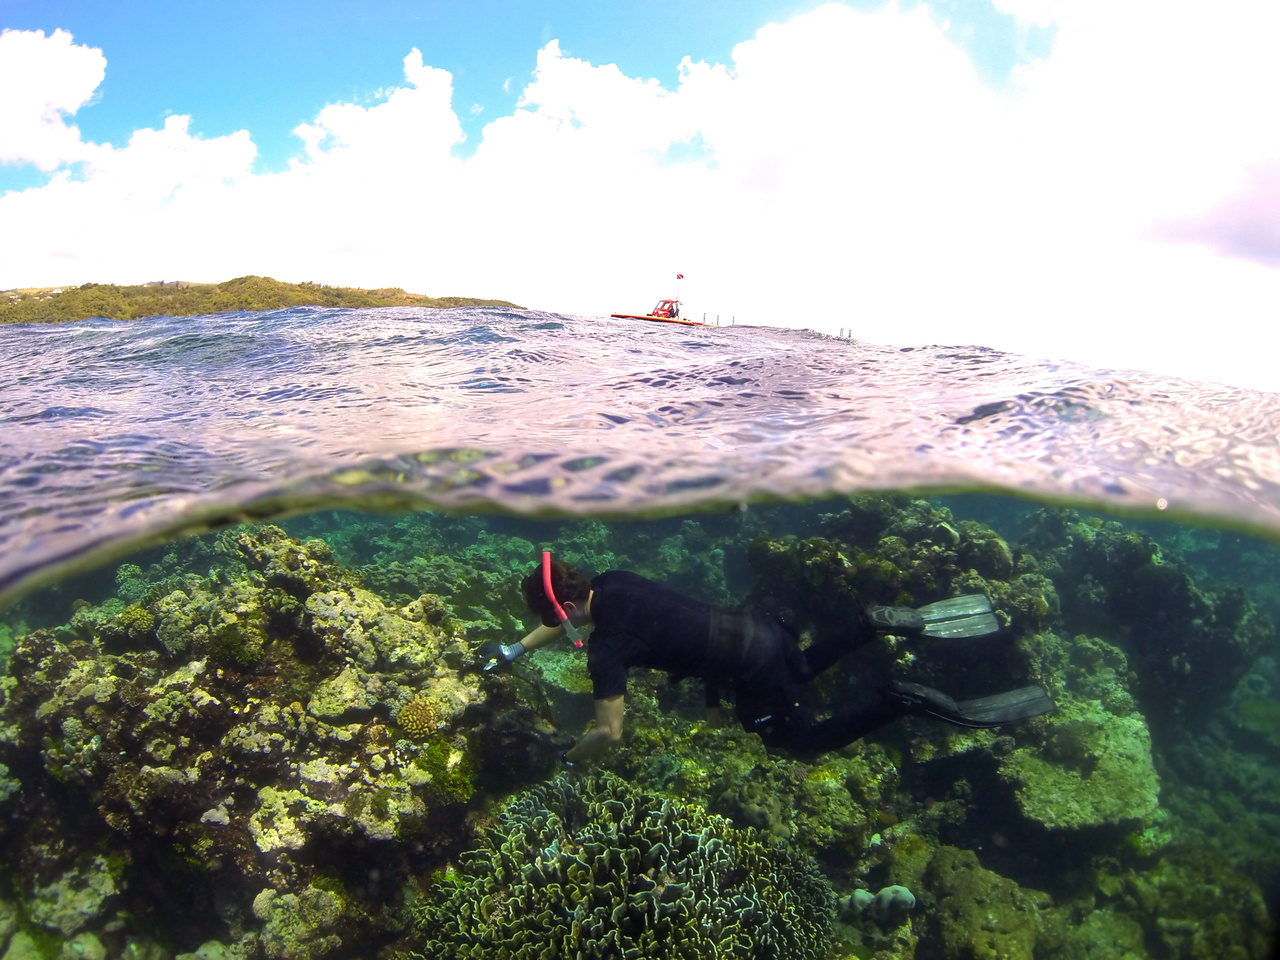 Chief Scientist Dr. Tom Oliver carefully replaces a subsurface temperature recorder on the coral reef along the coast of Guam